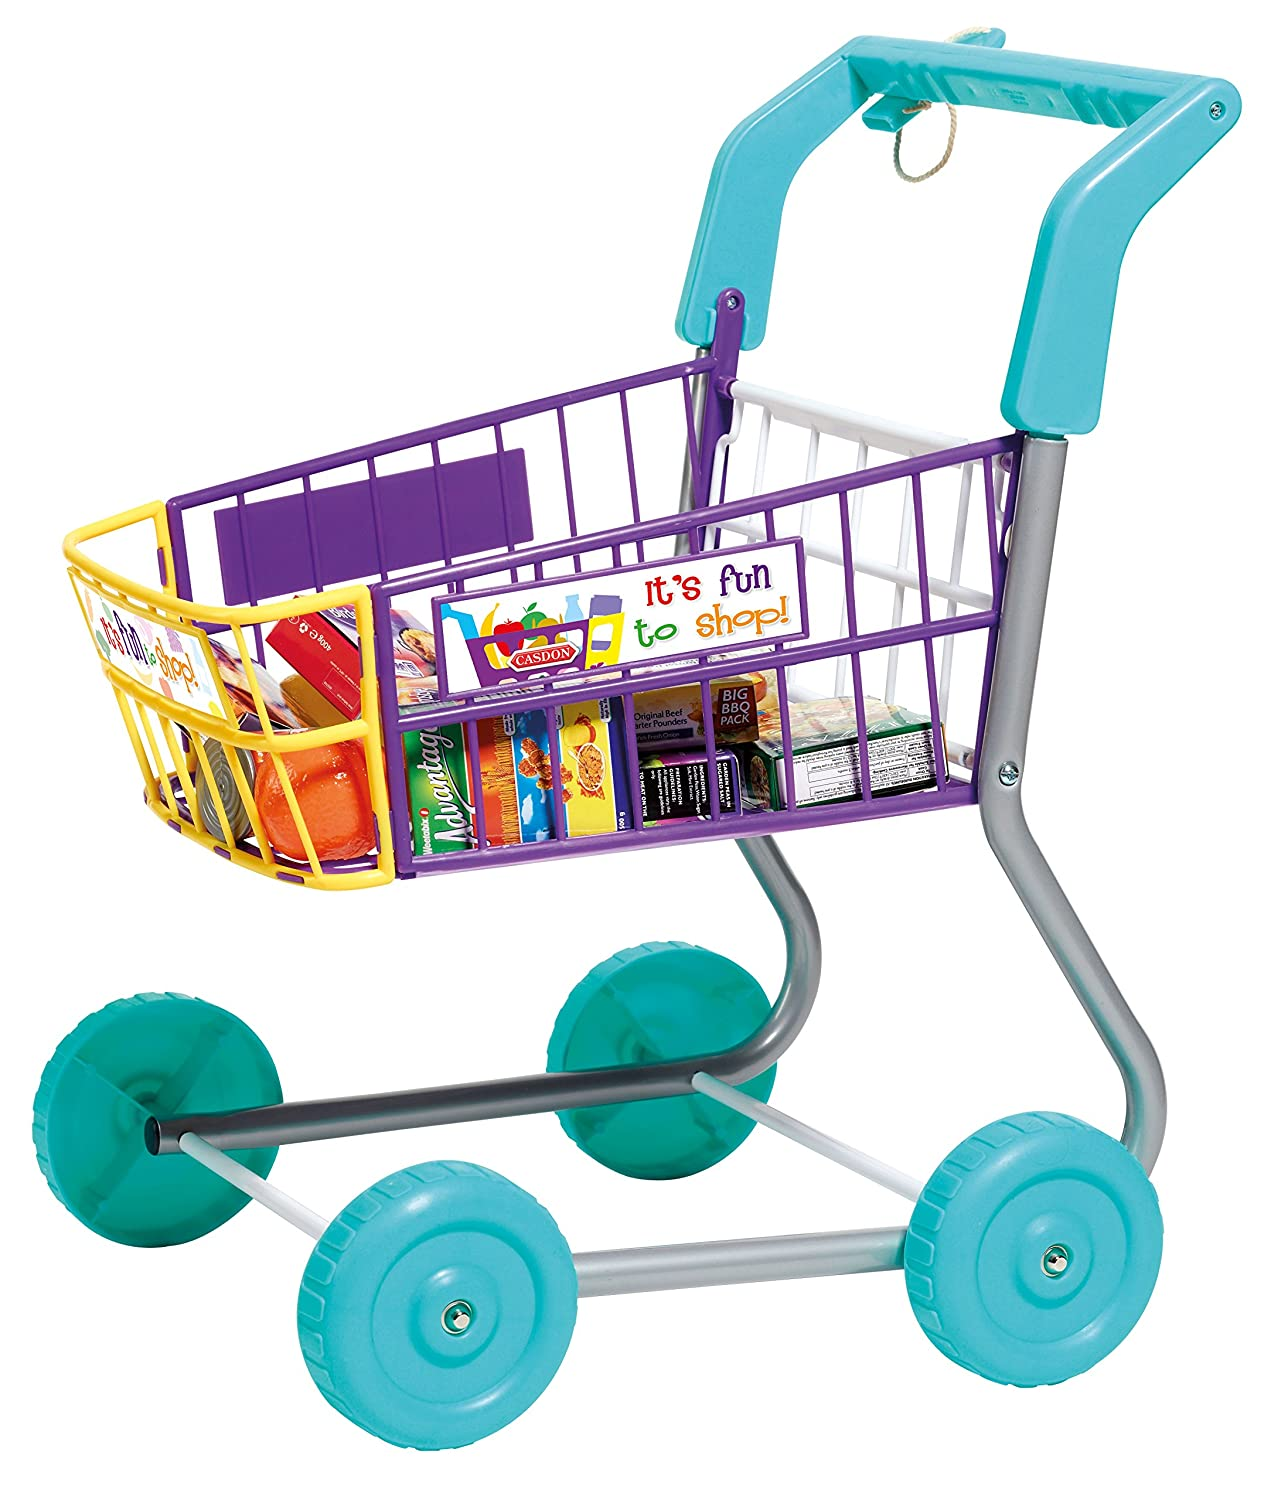 Toy Grocery Shopping Cart Trolley Includes Play Food